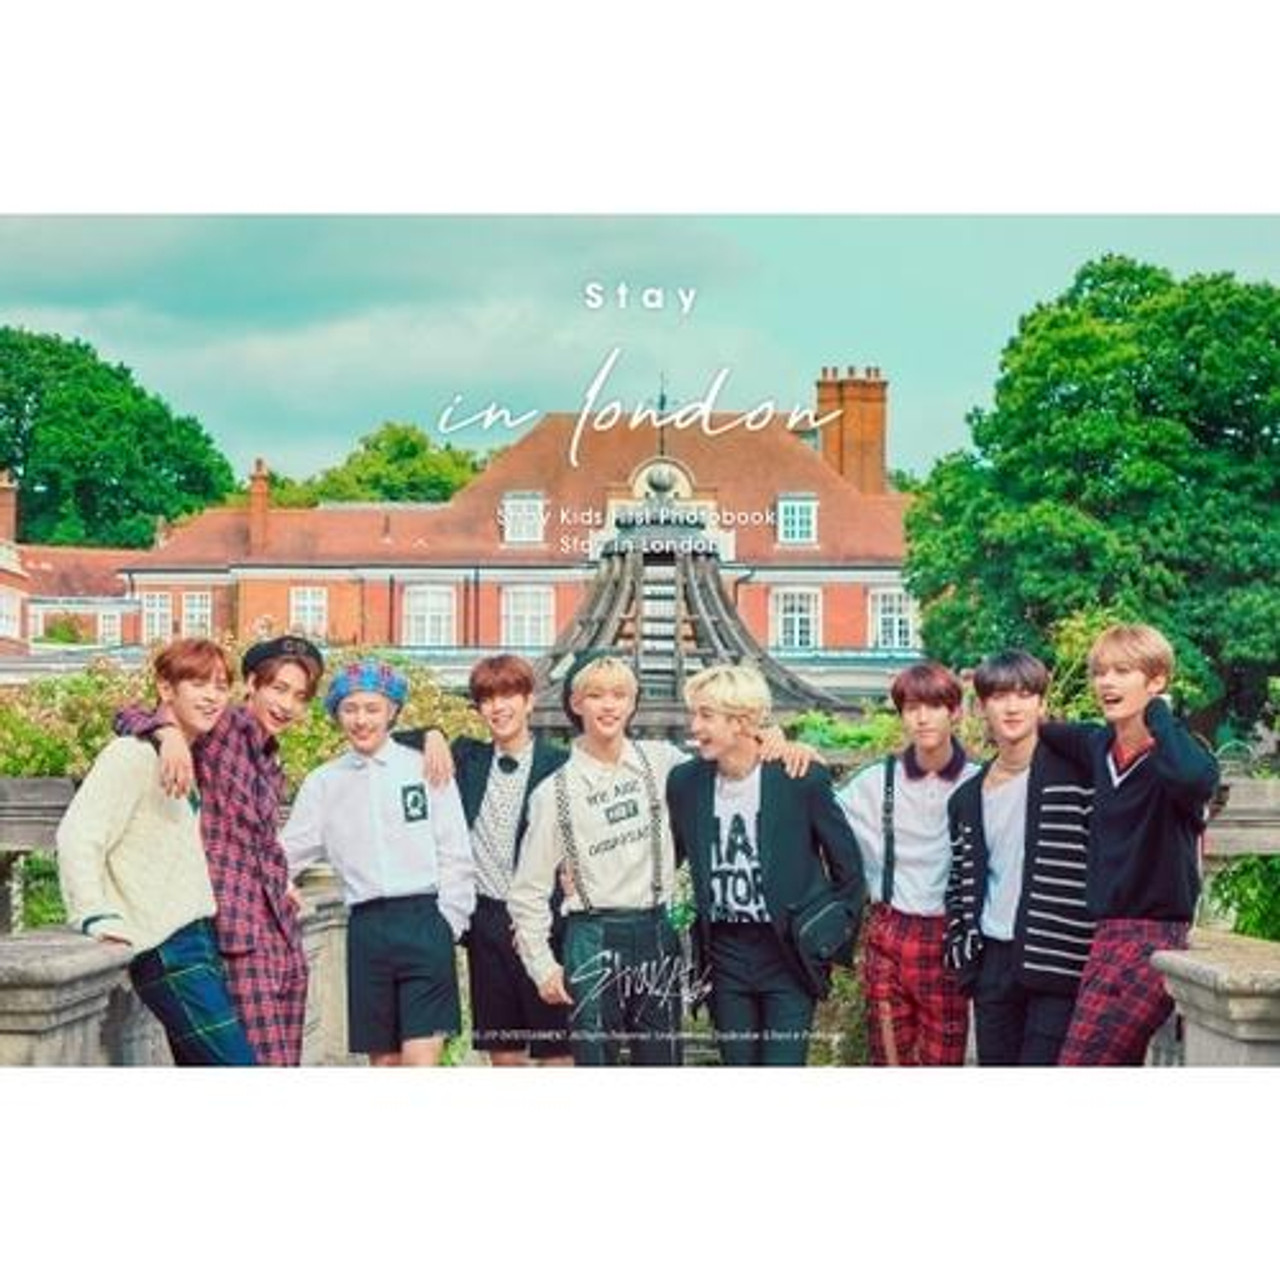 STRAY KIDS - STRAY KIDS FIRST PHOTOBOOK [STAY IN LONDON] (DHL or EMS shipping only)